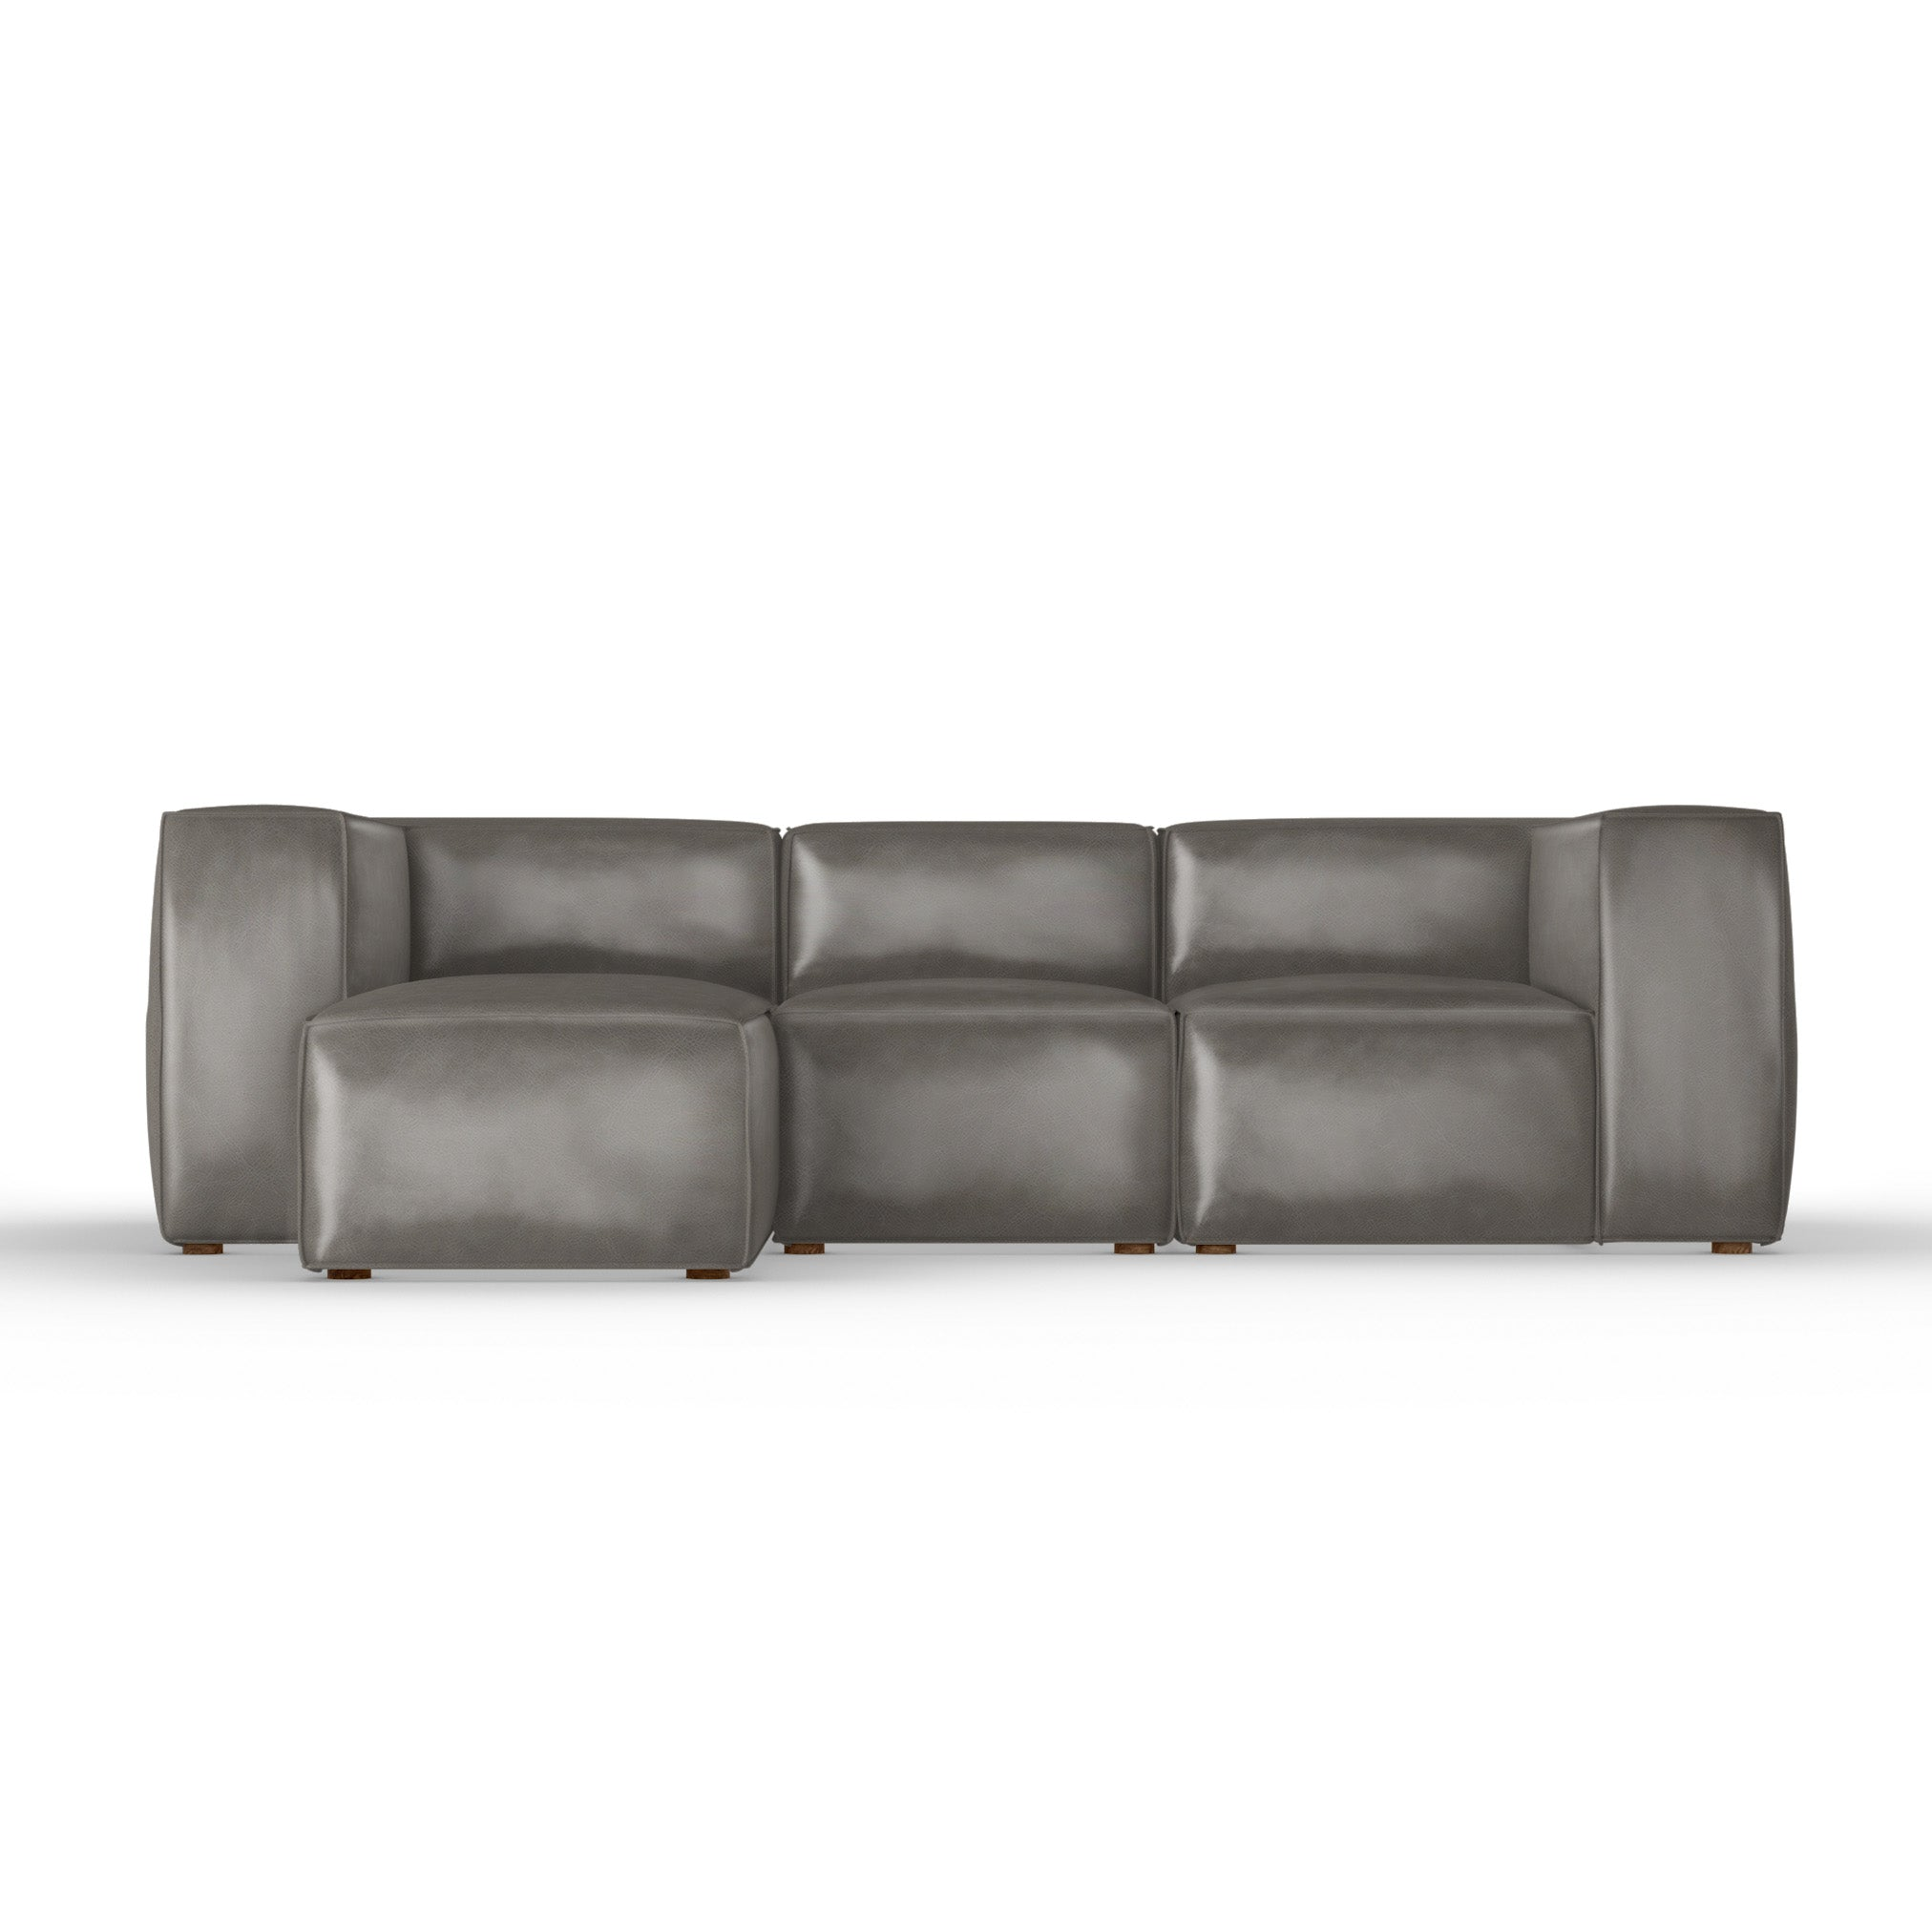 Varick Left-Chaise Sectional - Pumice Vintage Leather